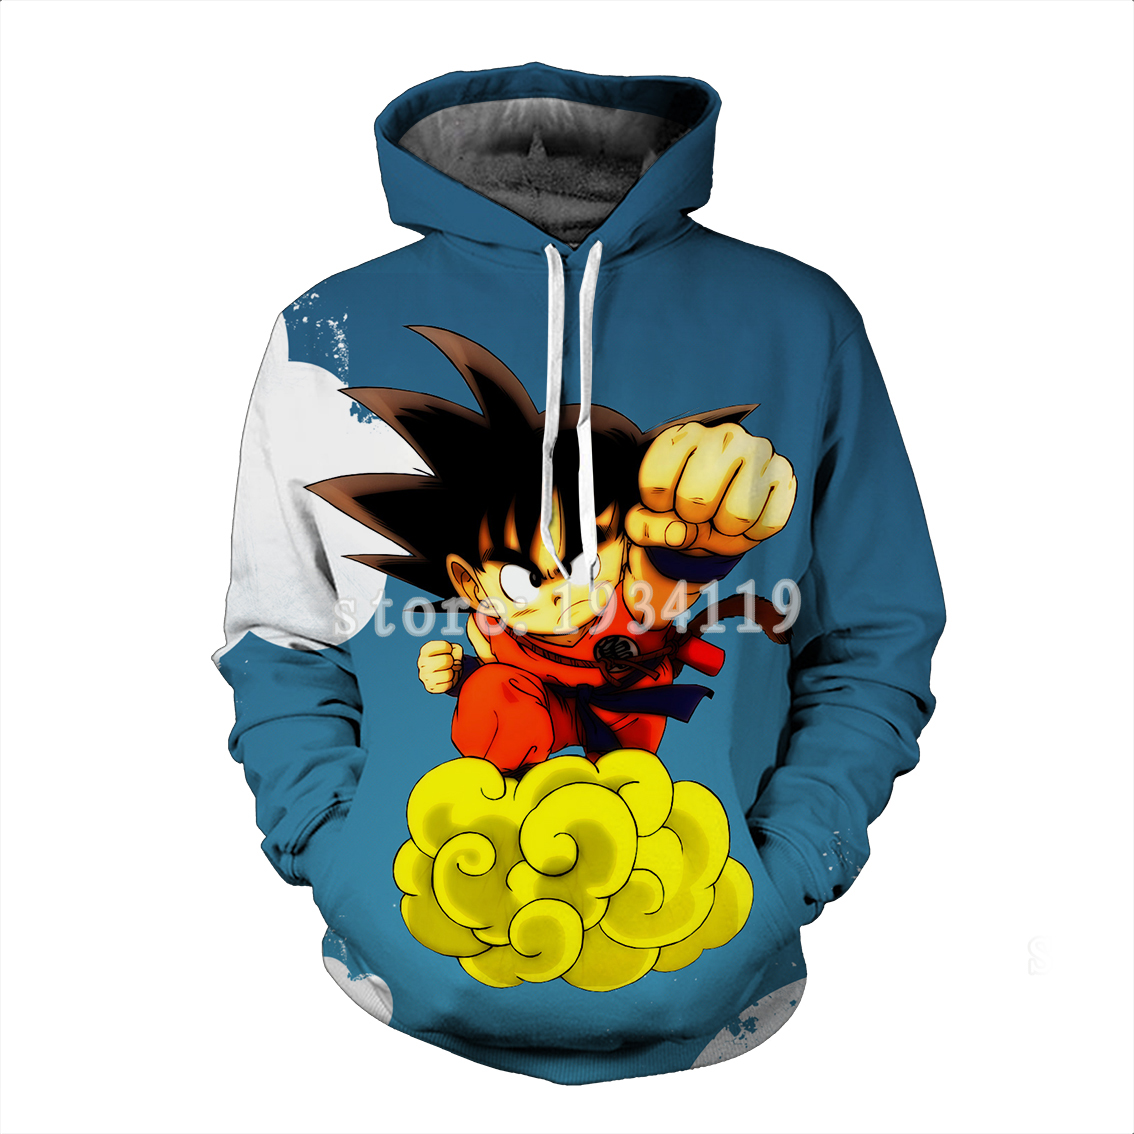 Dragon Ball Z Hoodies 3d Hoodies Pullovers Sportswear Hooded Sweatshirts  Mens Sleeve  Son Goku Hoode Dragon Ball Z Vegetto blue